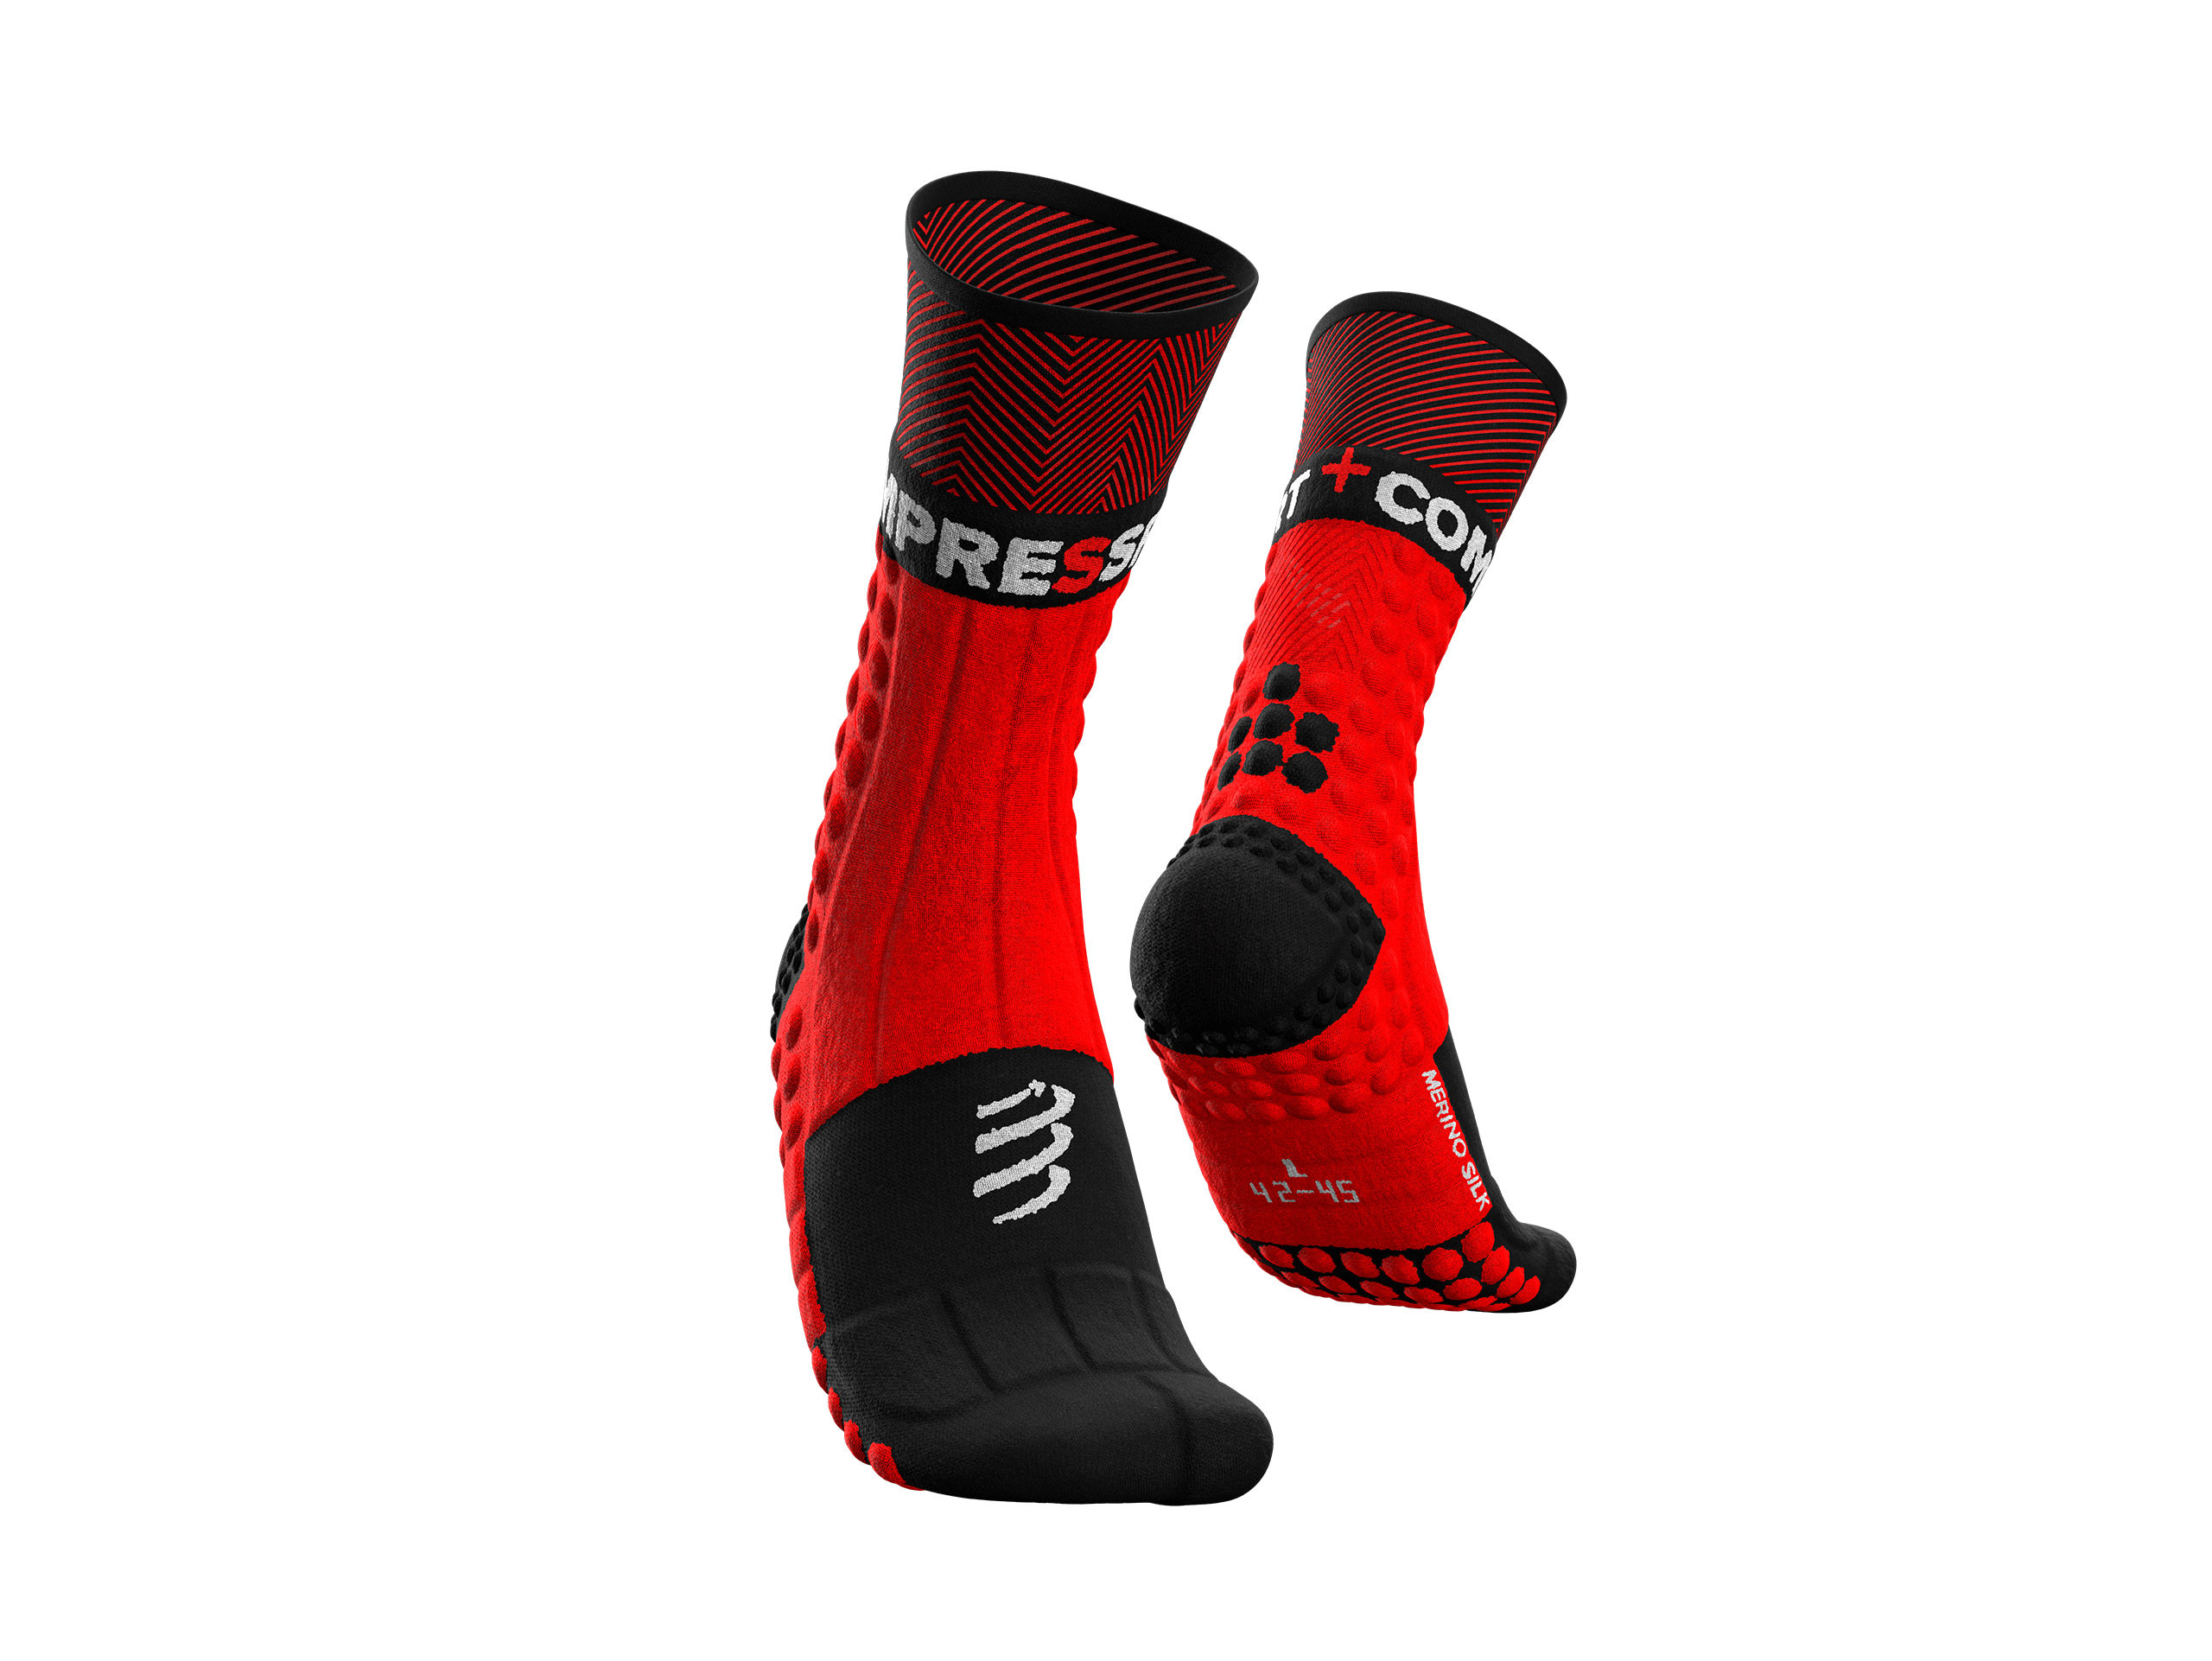 Pro Racing Socks Winter Trail - Red Black